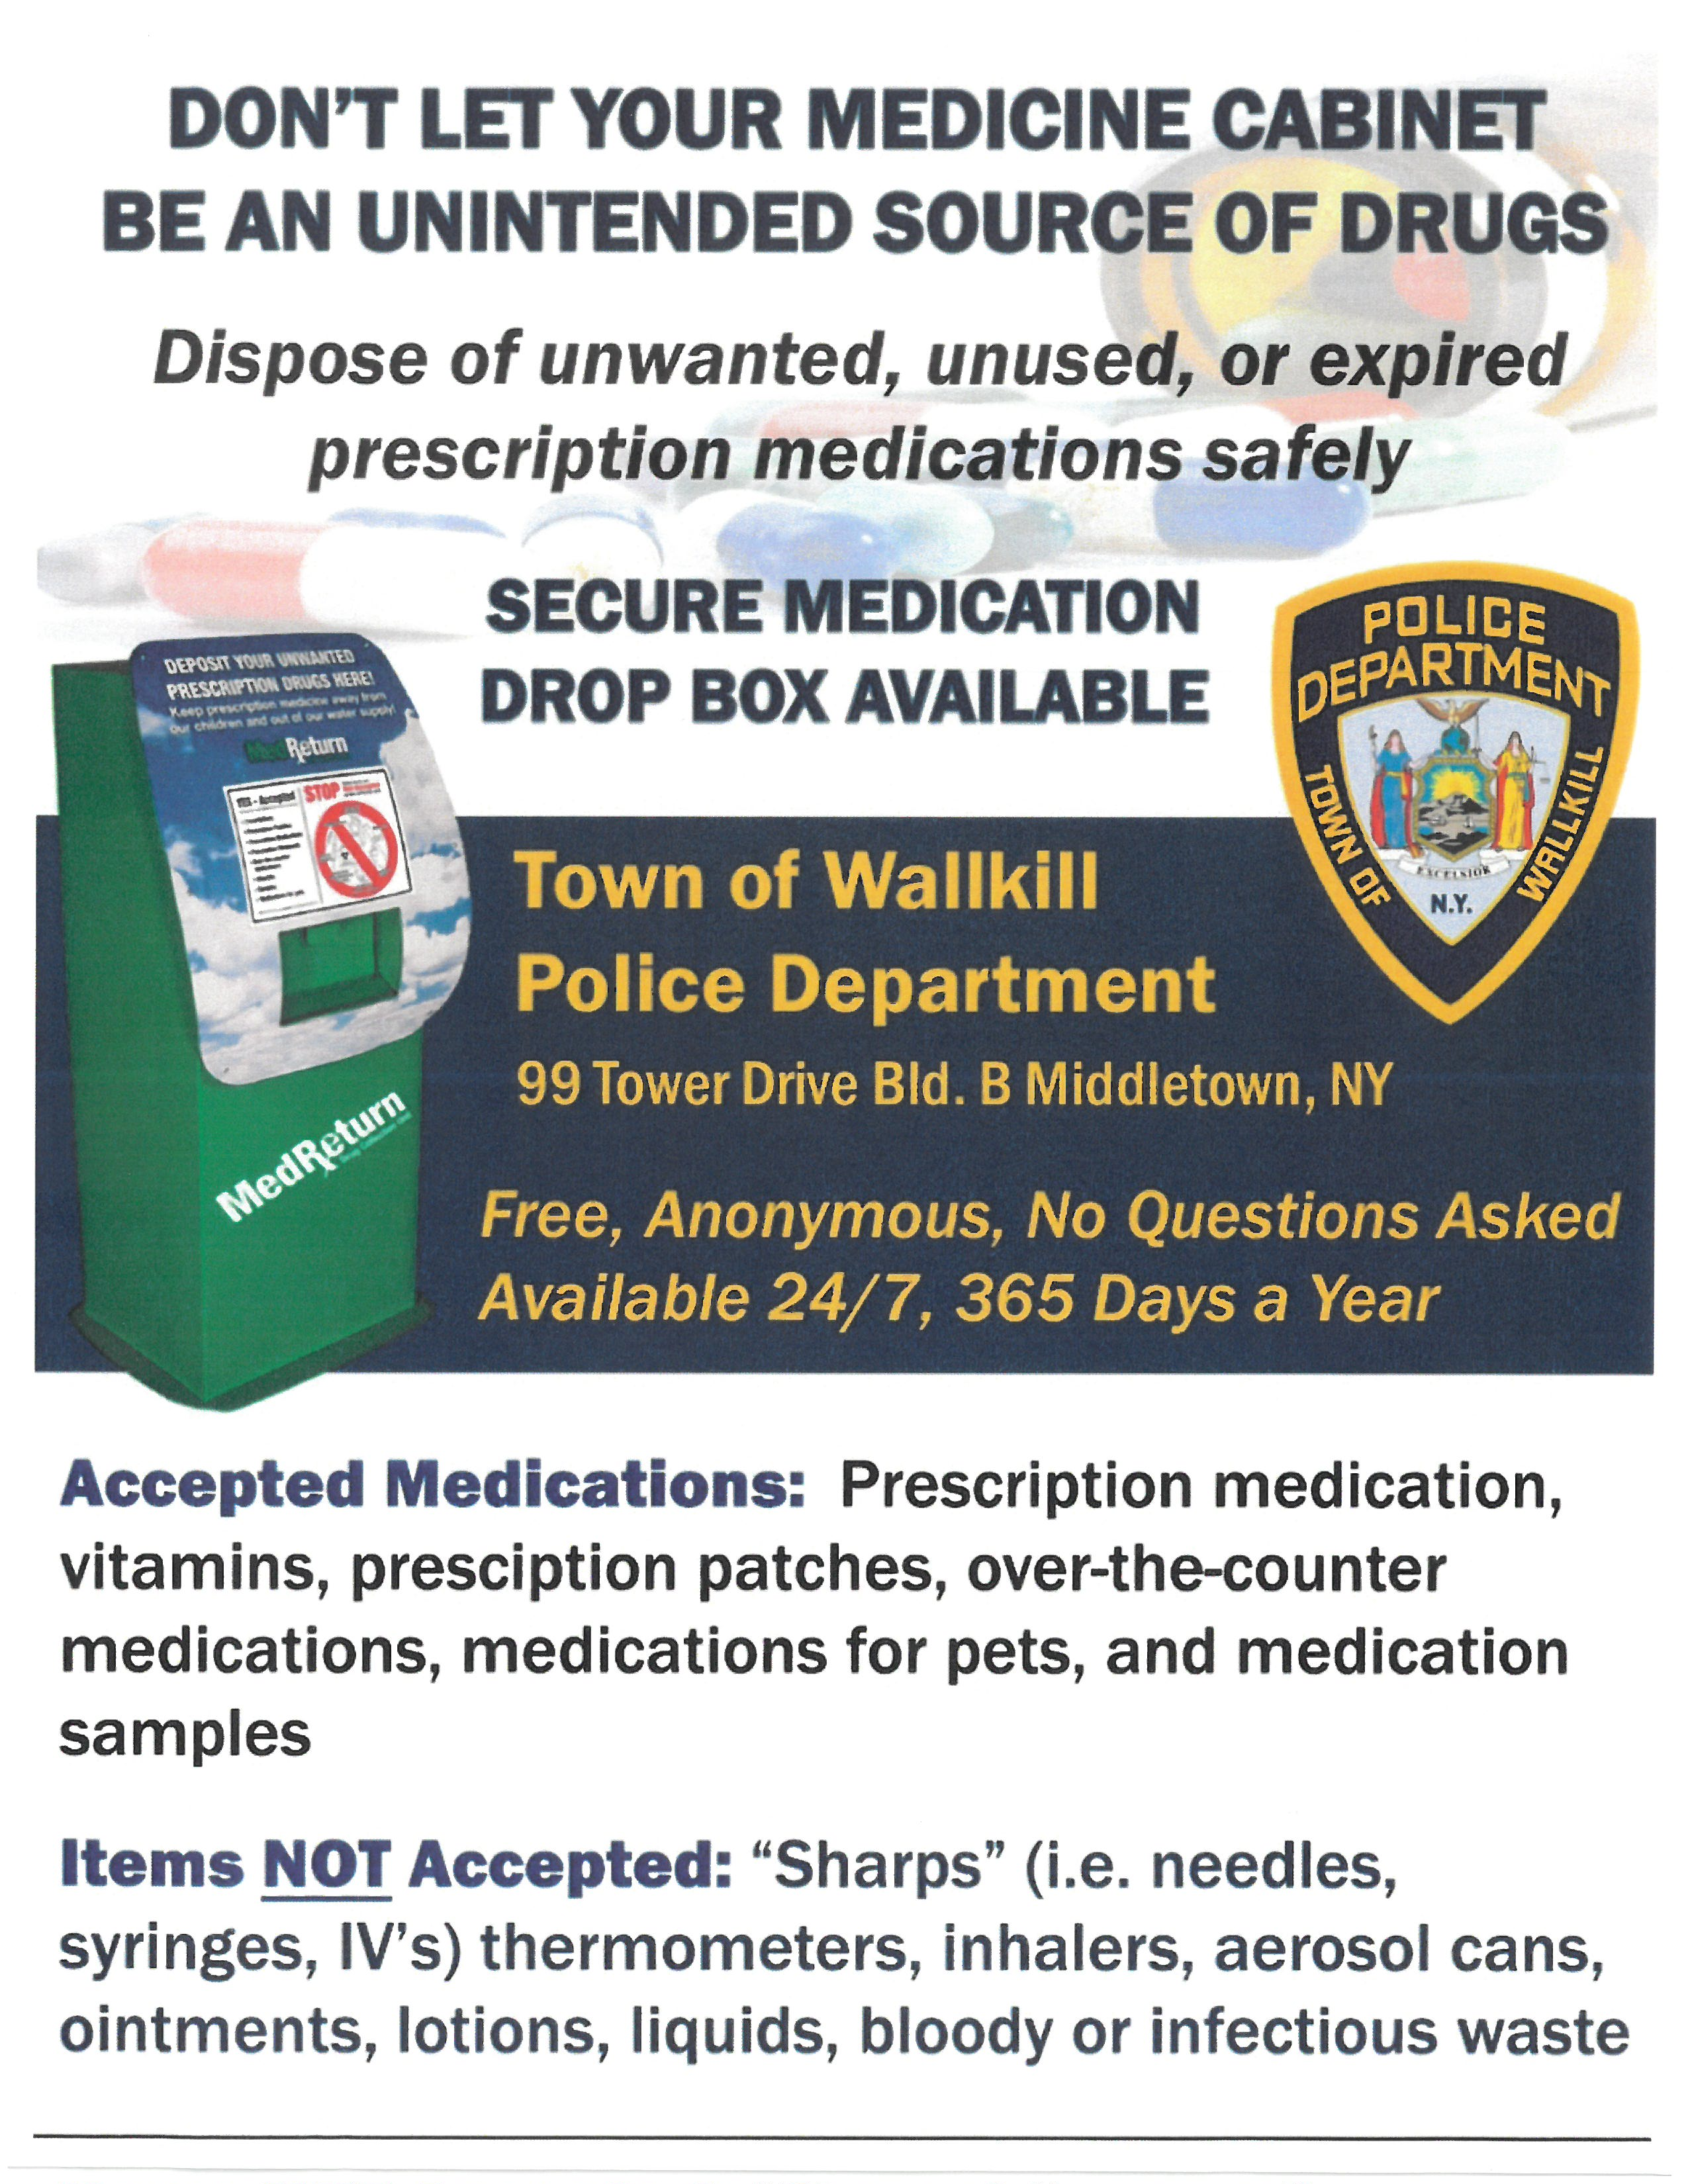 Town Of Wallkill Police Department Secure Medication Drop Box 10 19 2020